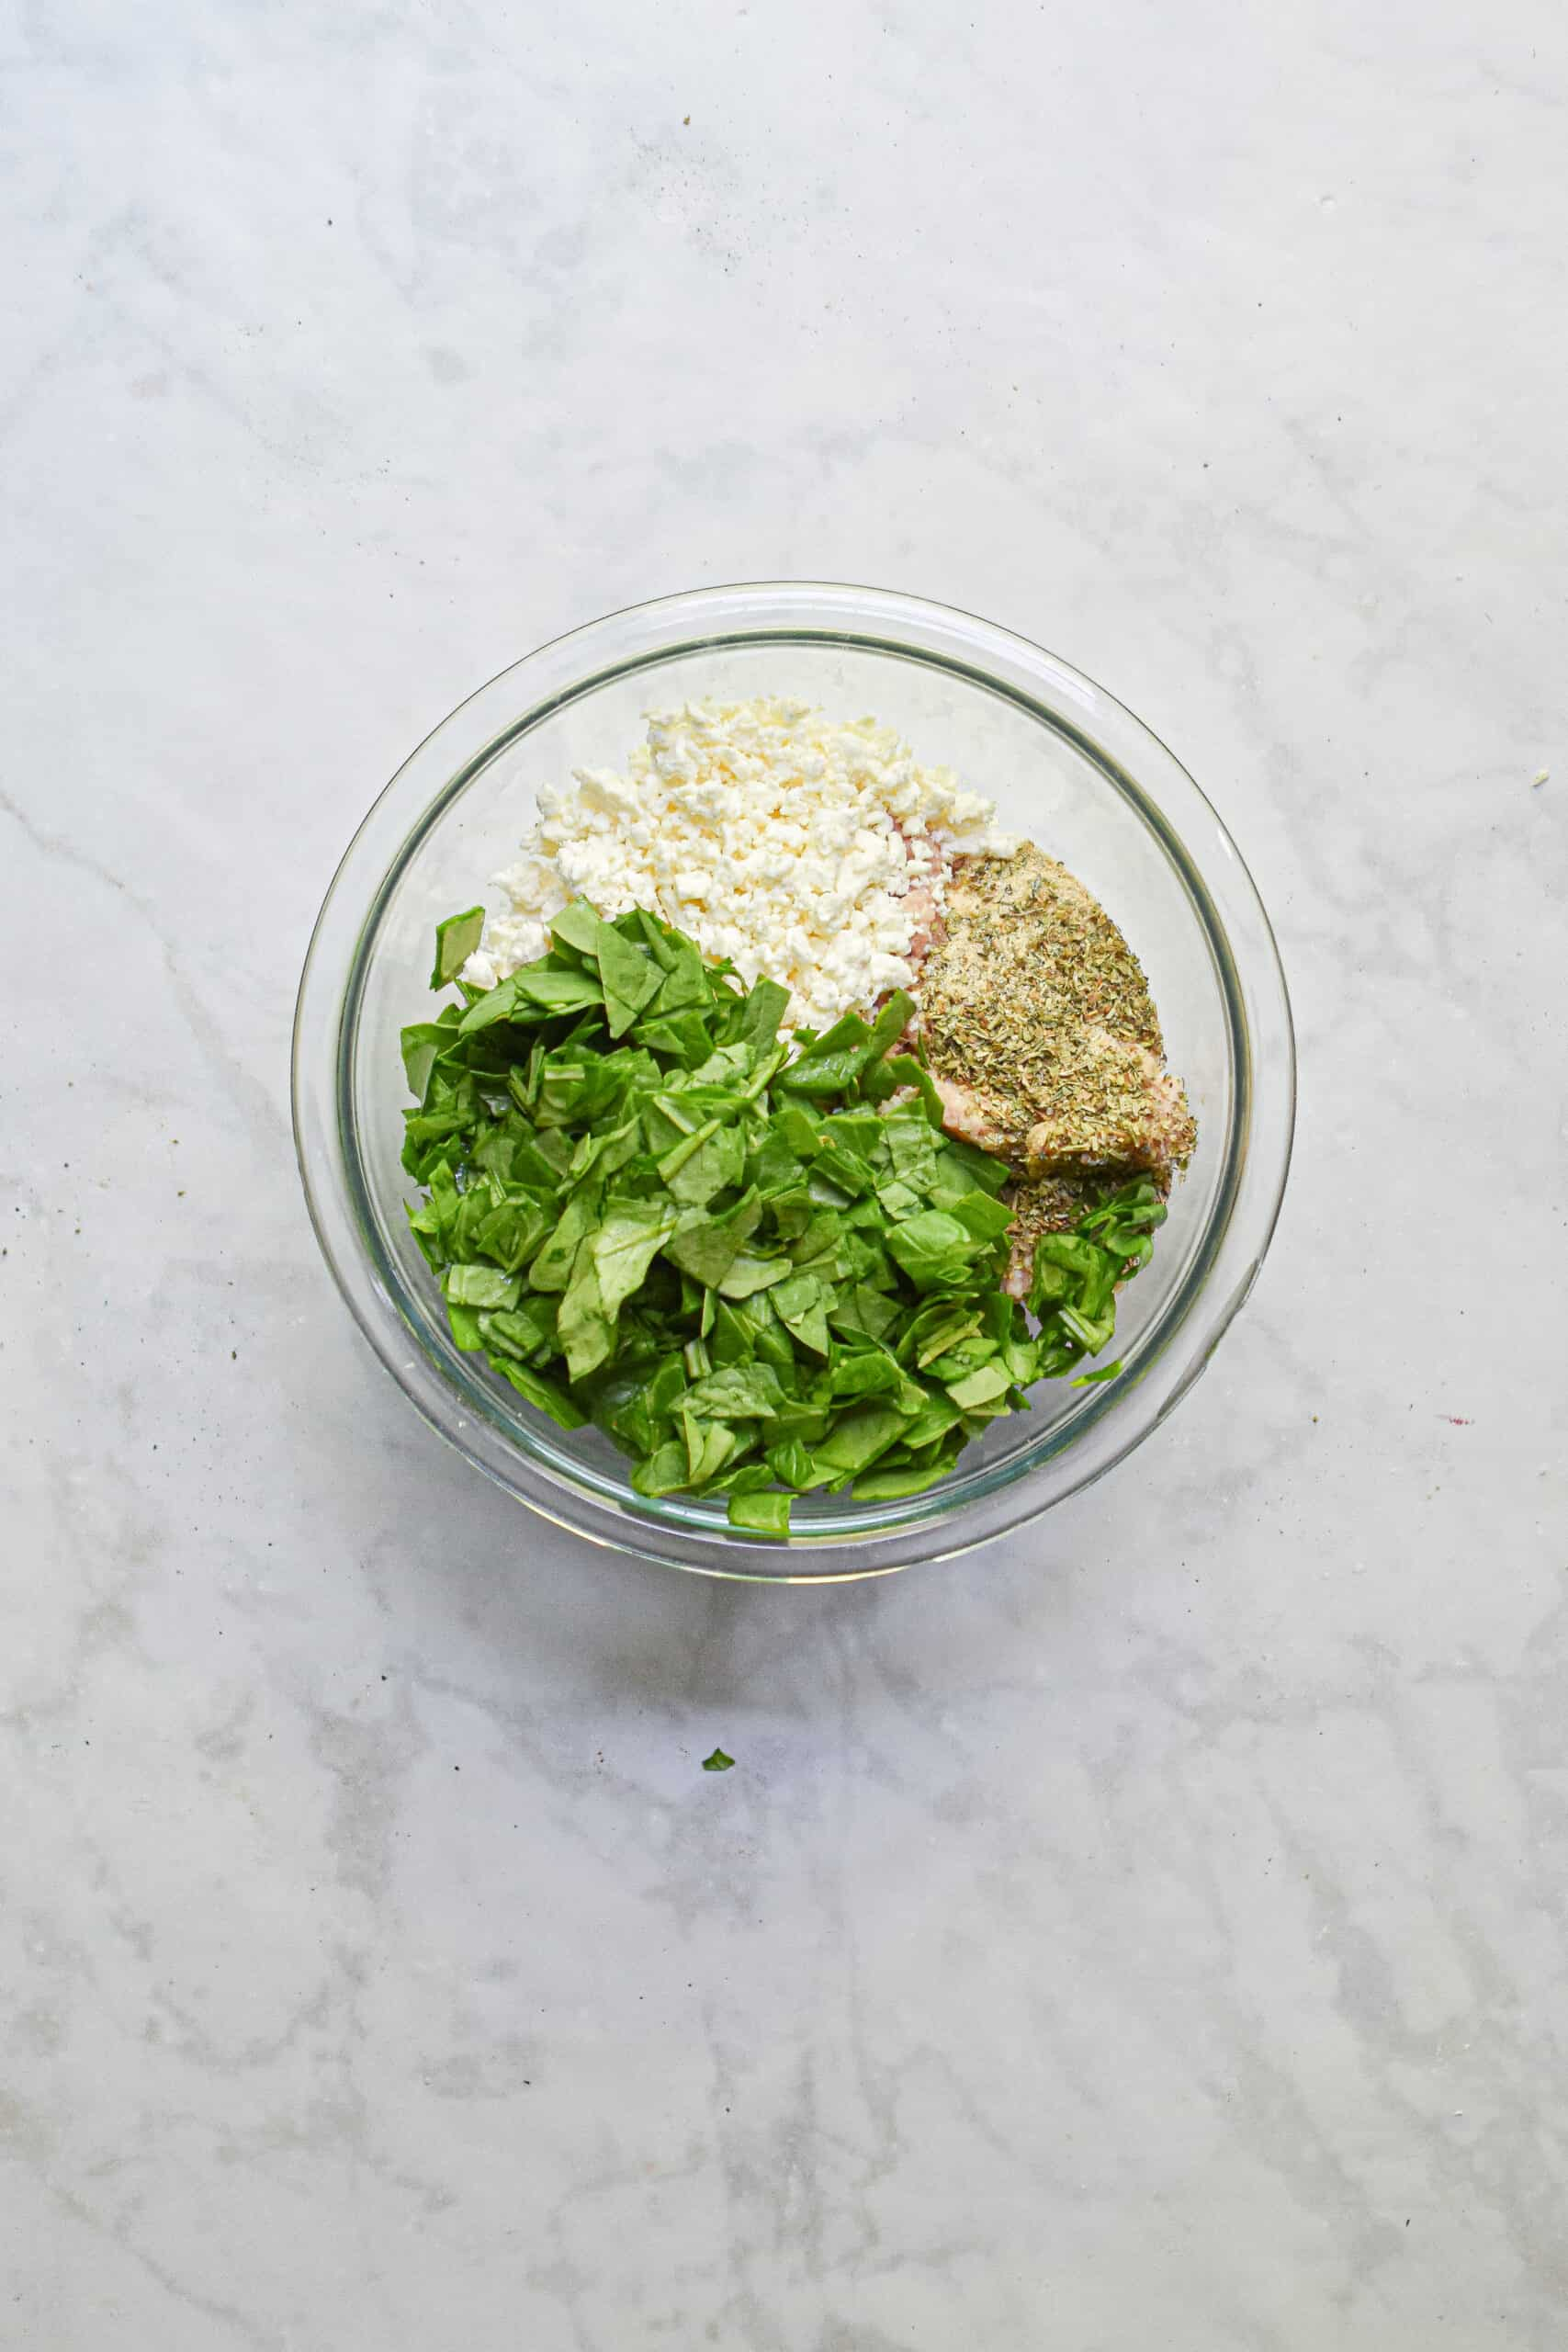 Add the spinach to the bowl of feta, seasonings, and ground chicken